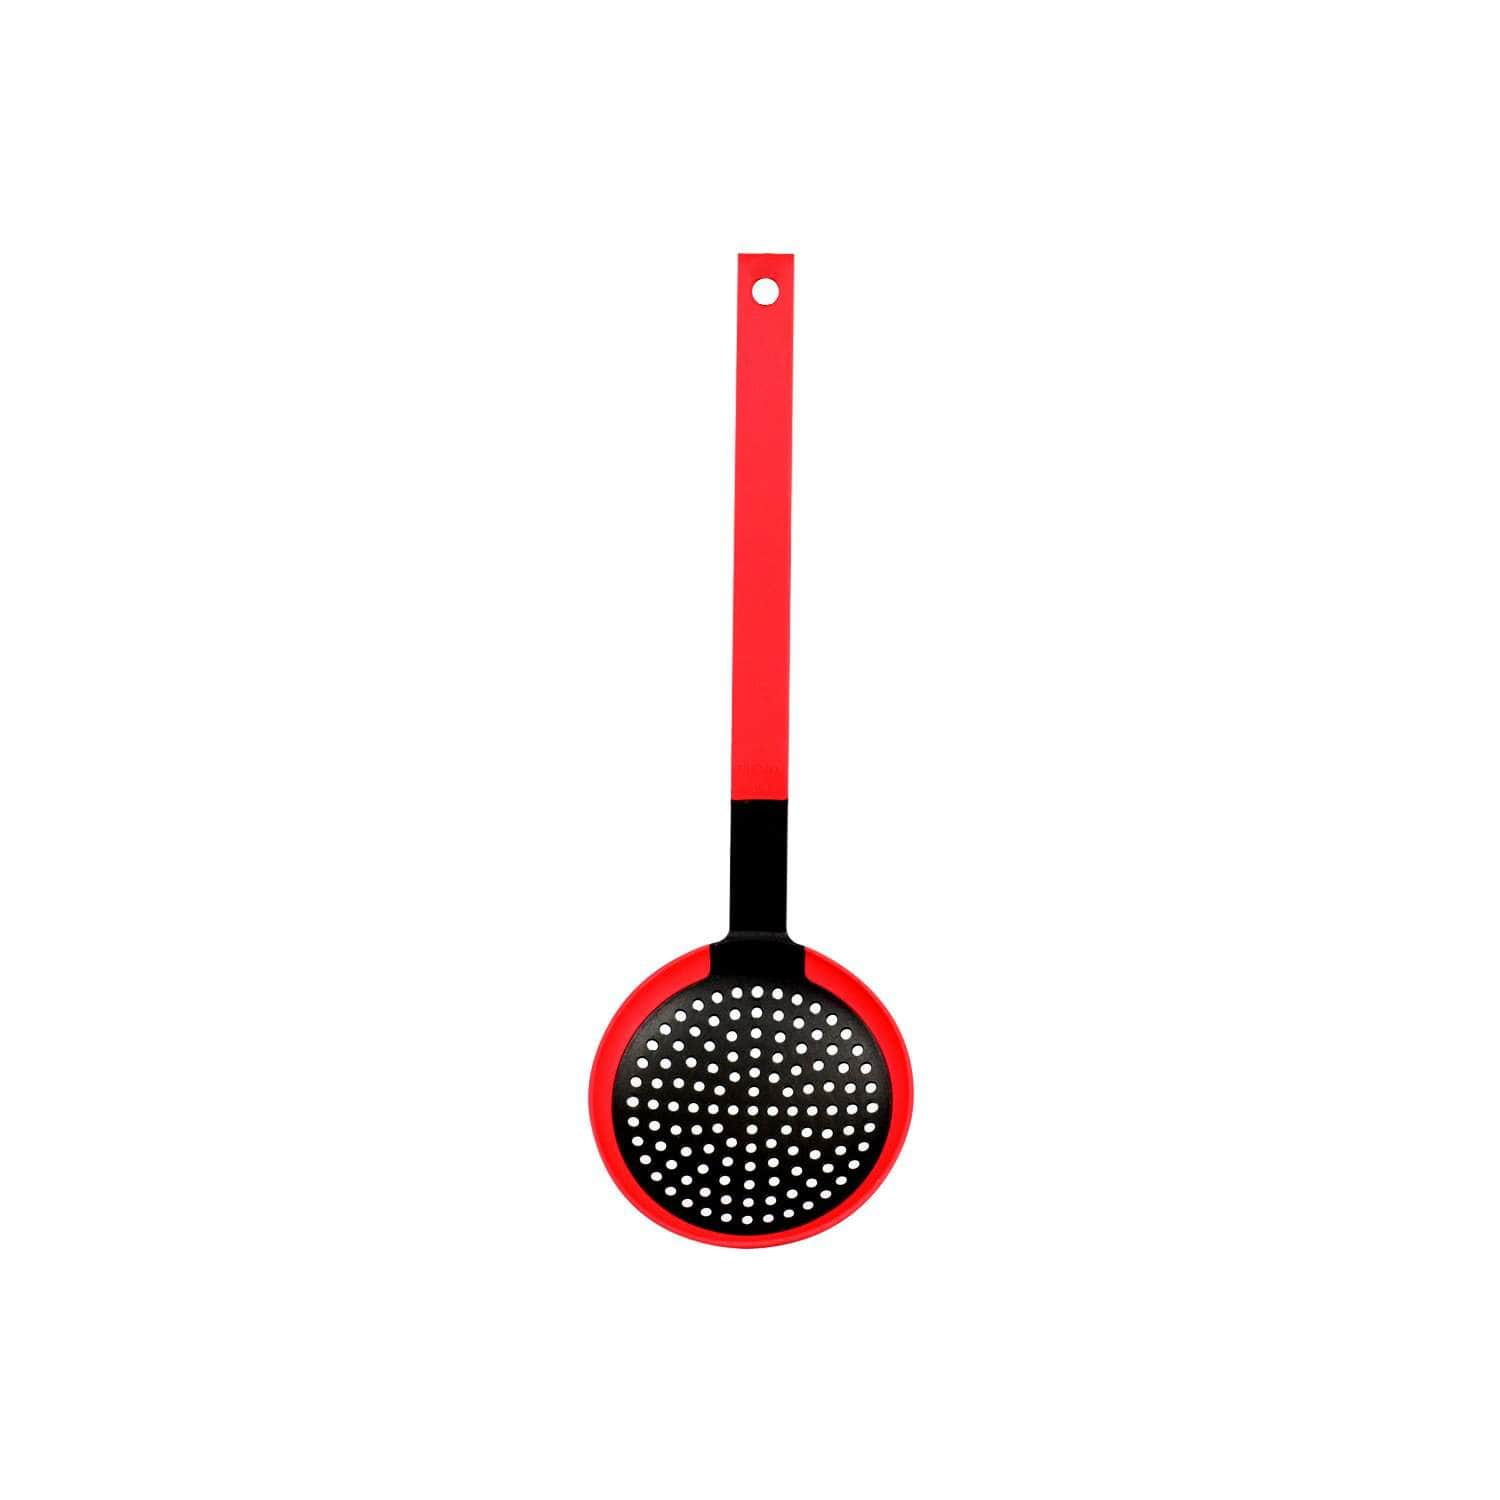 Woll™ 'Cook It' skimmer spoon